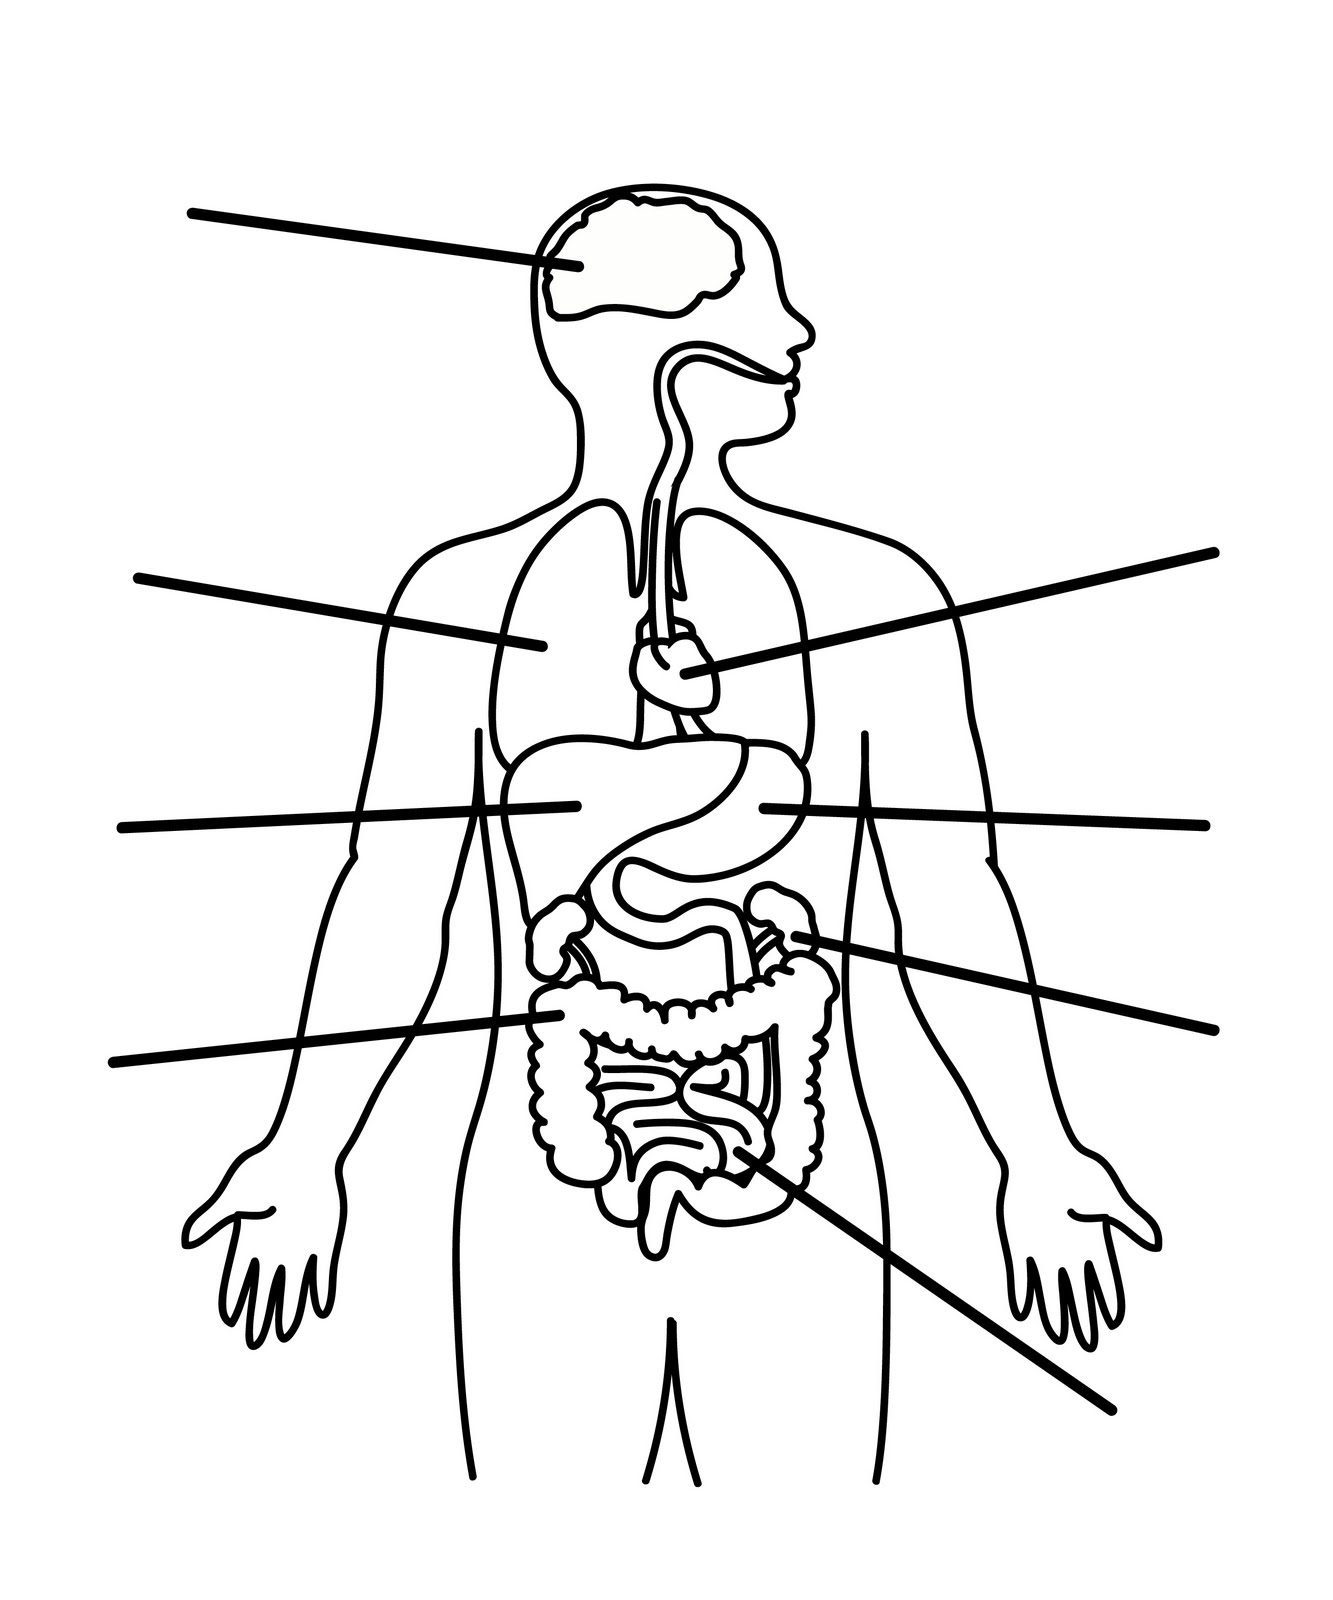 graphic about Body Outline Printable named Entire body Drawing Determine at  No cost for person